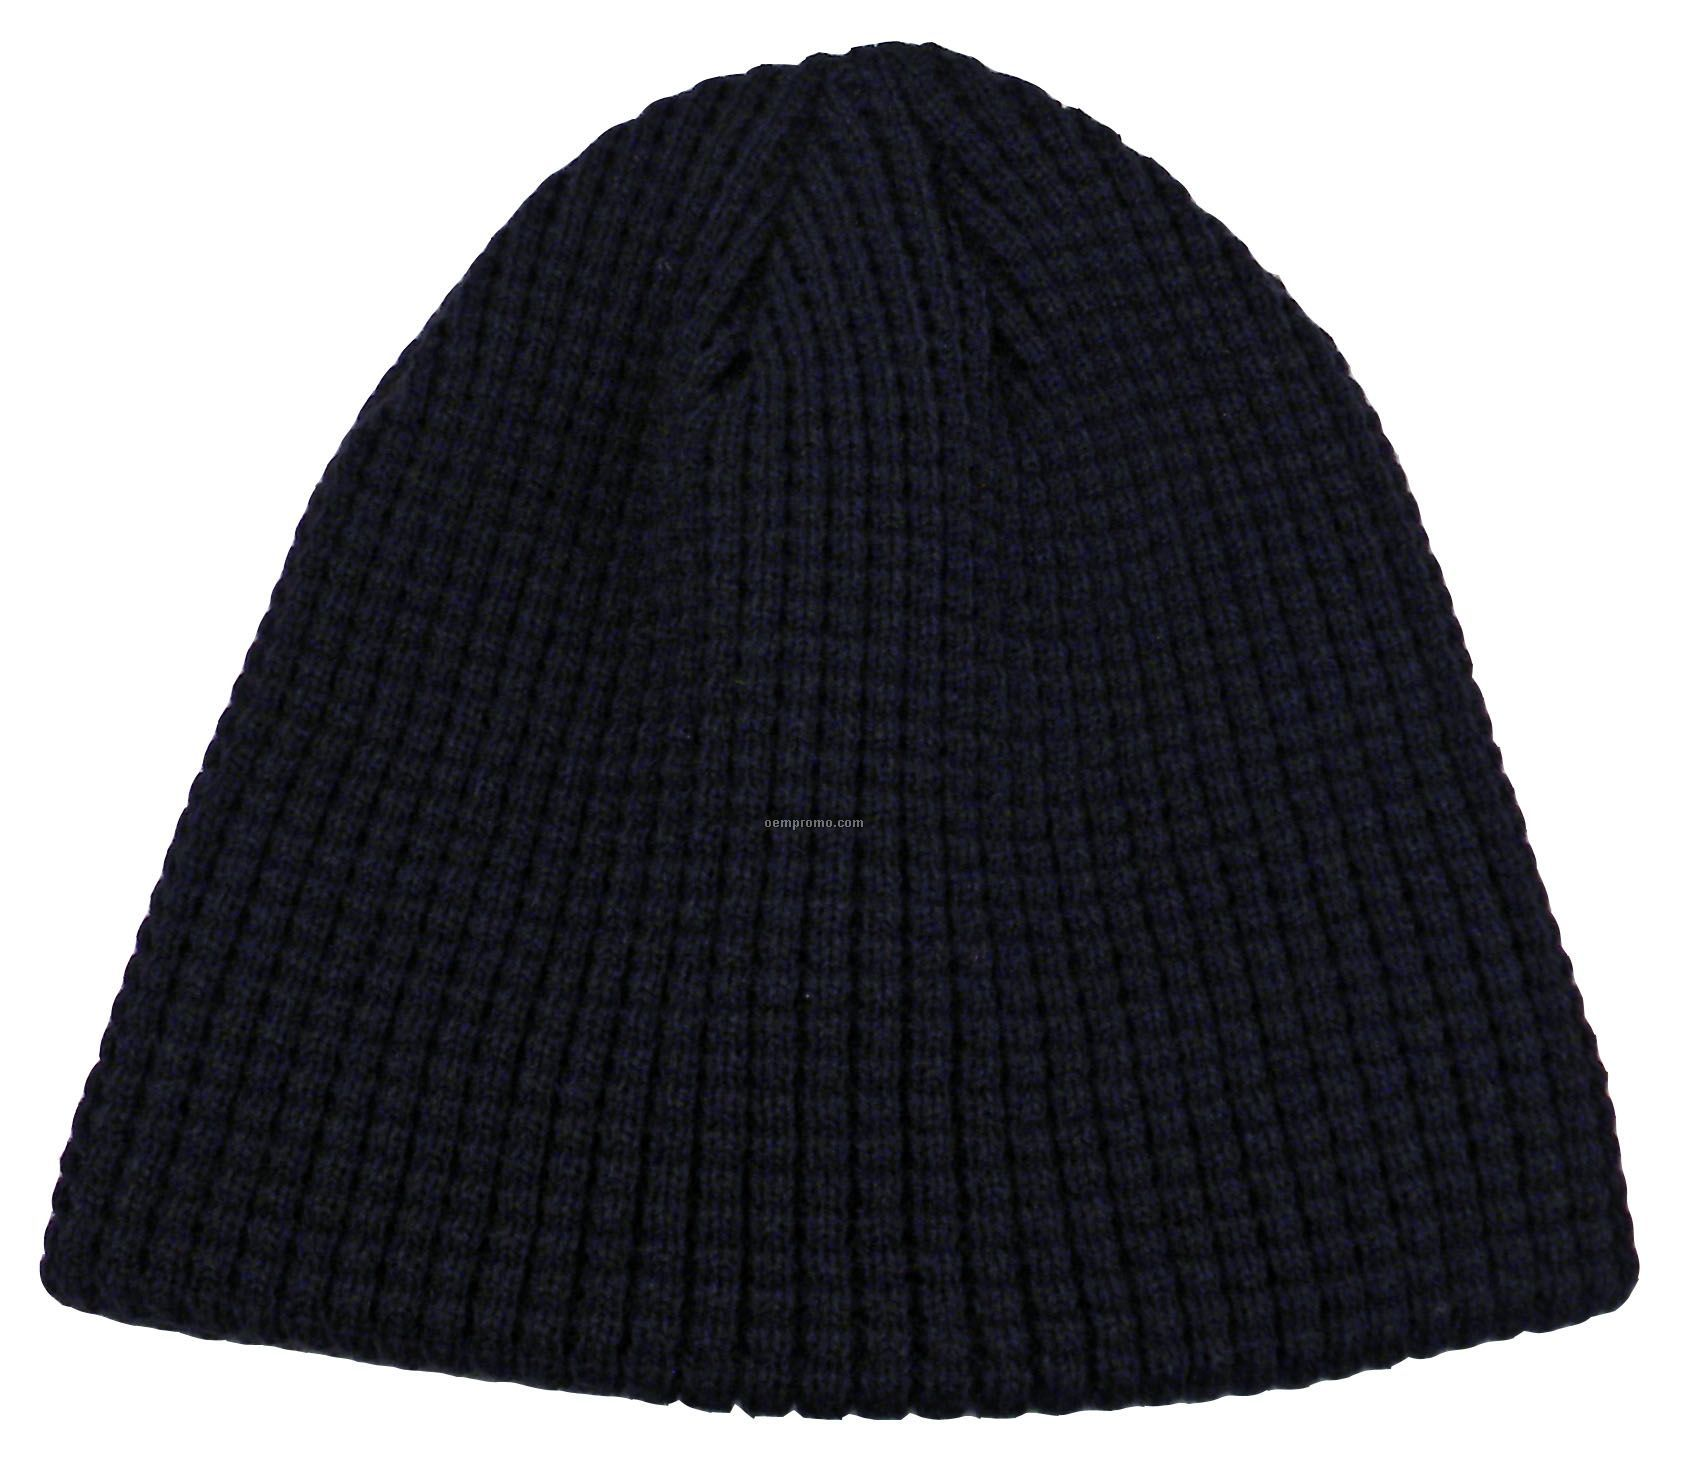 Solid Colored Big Bear Eco Beanie (Domestic 5 Day Delivery)